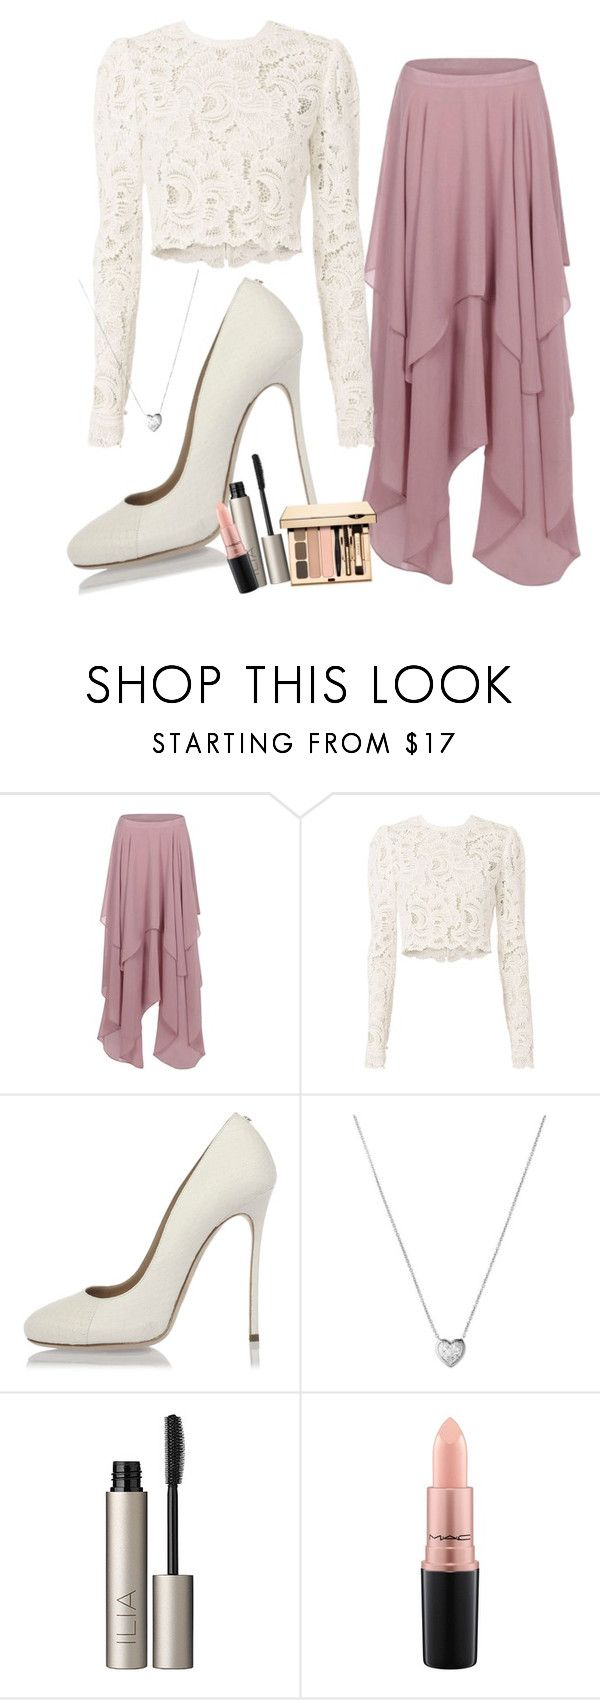 """Untitled #84"" by pancakes532 ❤ liked on Polyvore featuring Boohoo, A.L.C., Dsquared2, Links of London, Ilia and MAC Cosmetics"